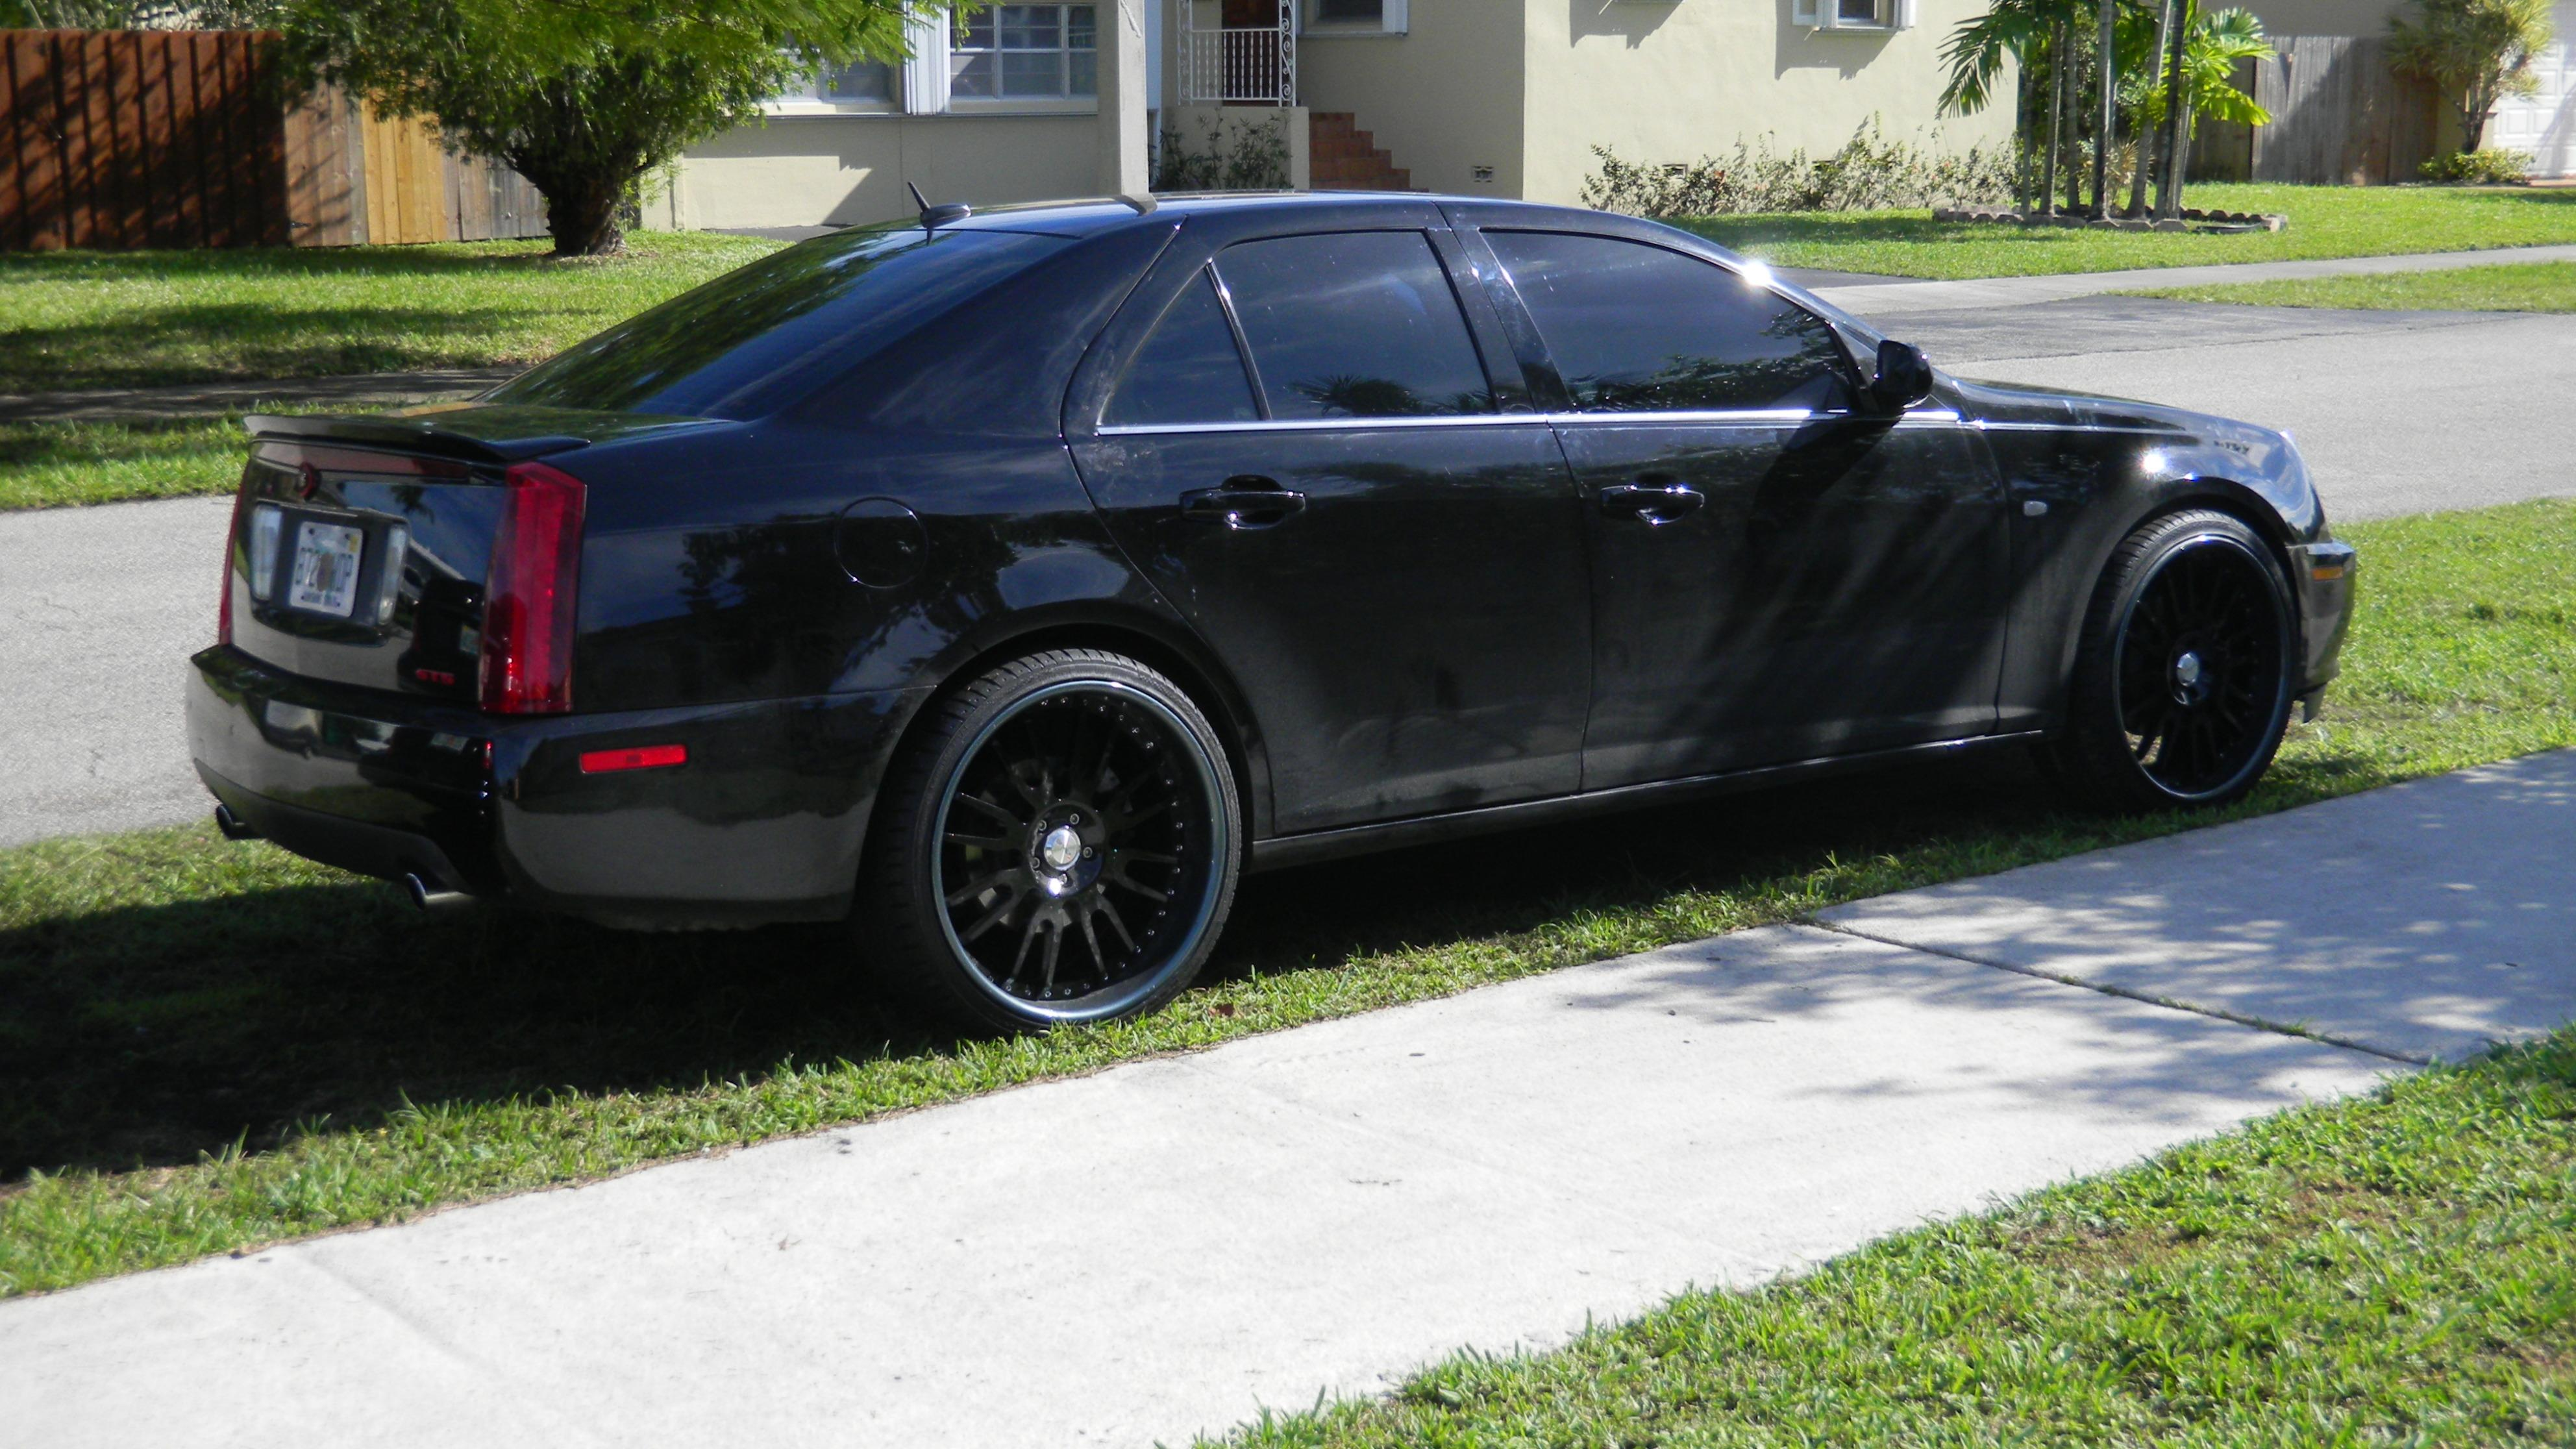 Cadillac Cts Rims >> caddysts22 2005 Cadillac STS Specs, Photos, Modification ...